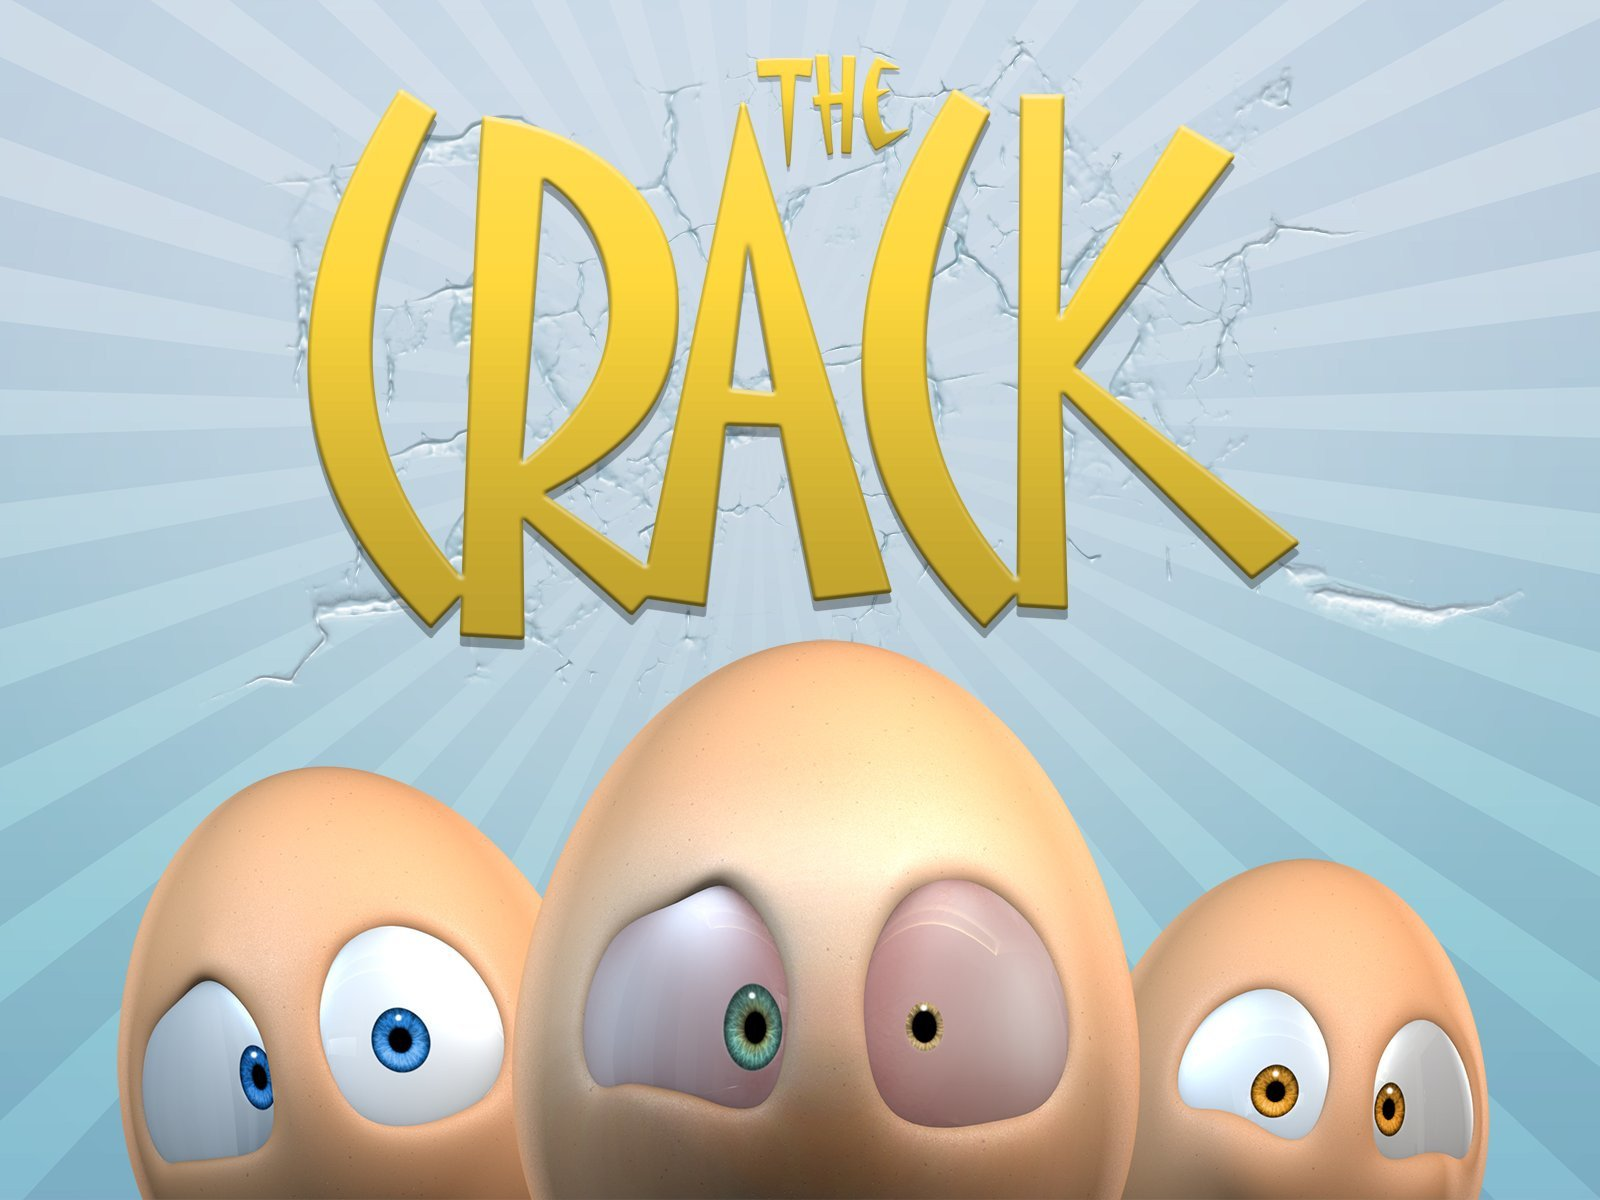 The Crack!